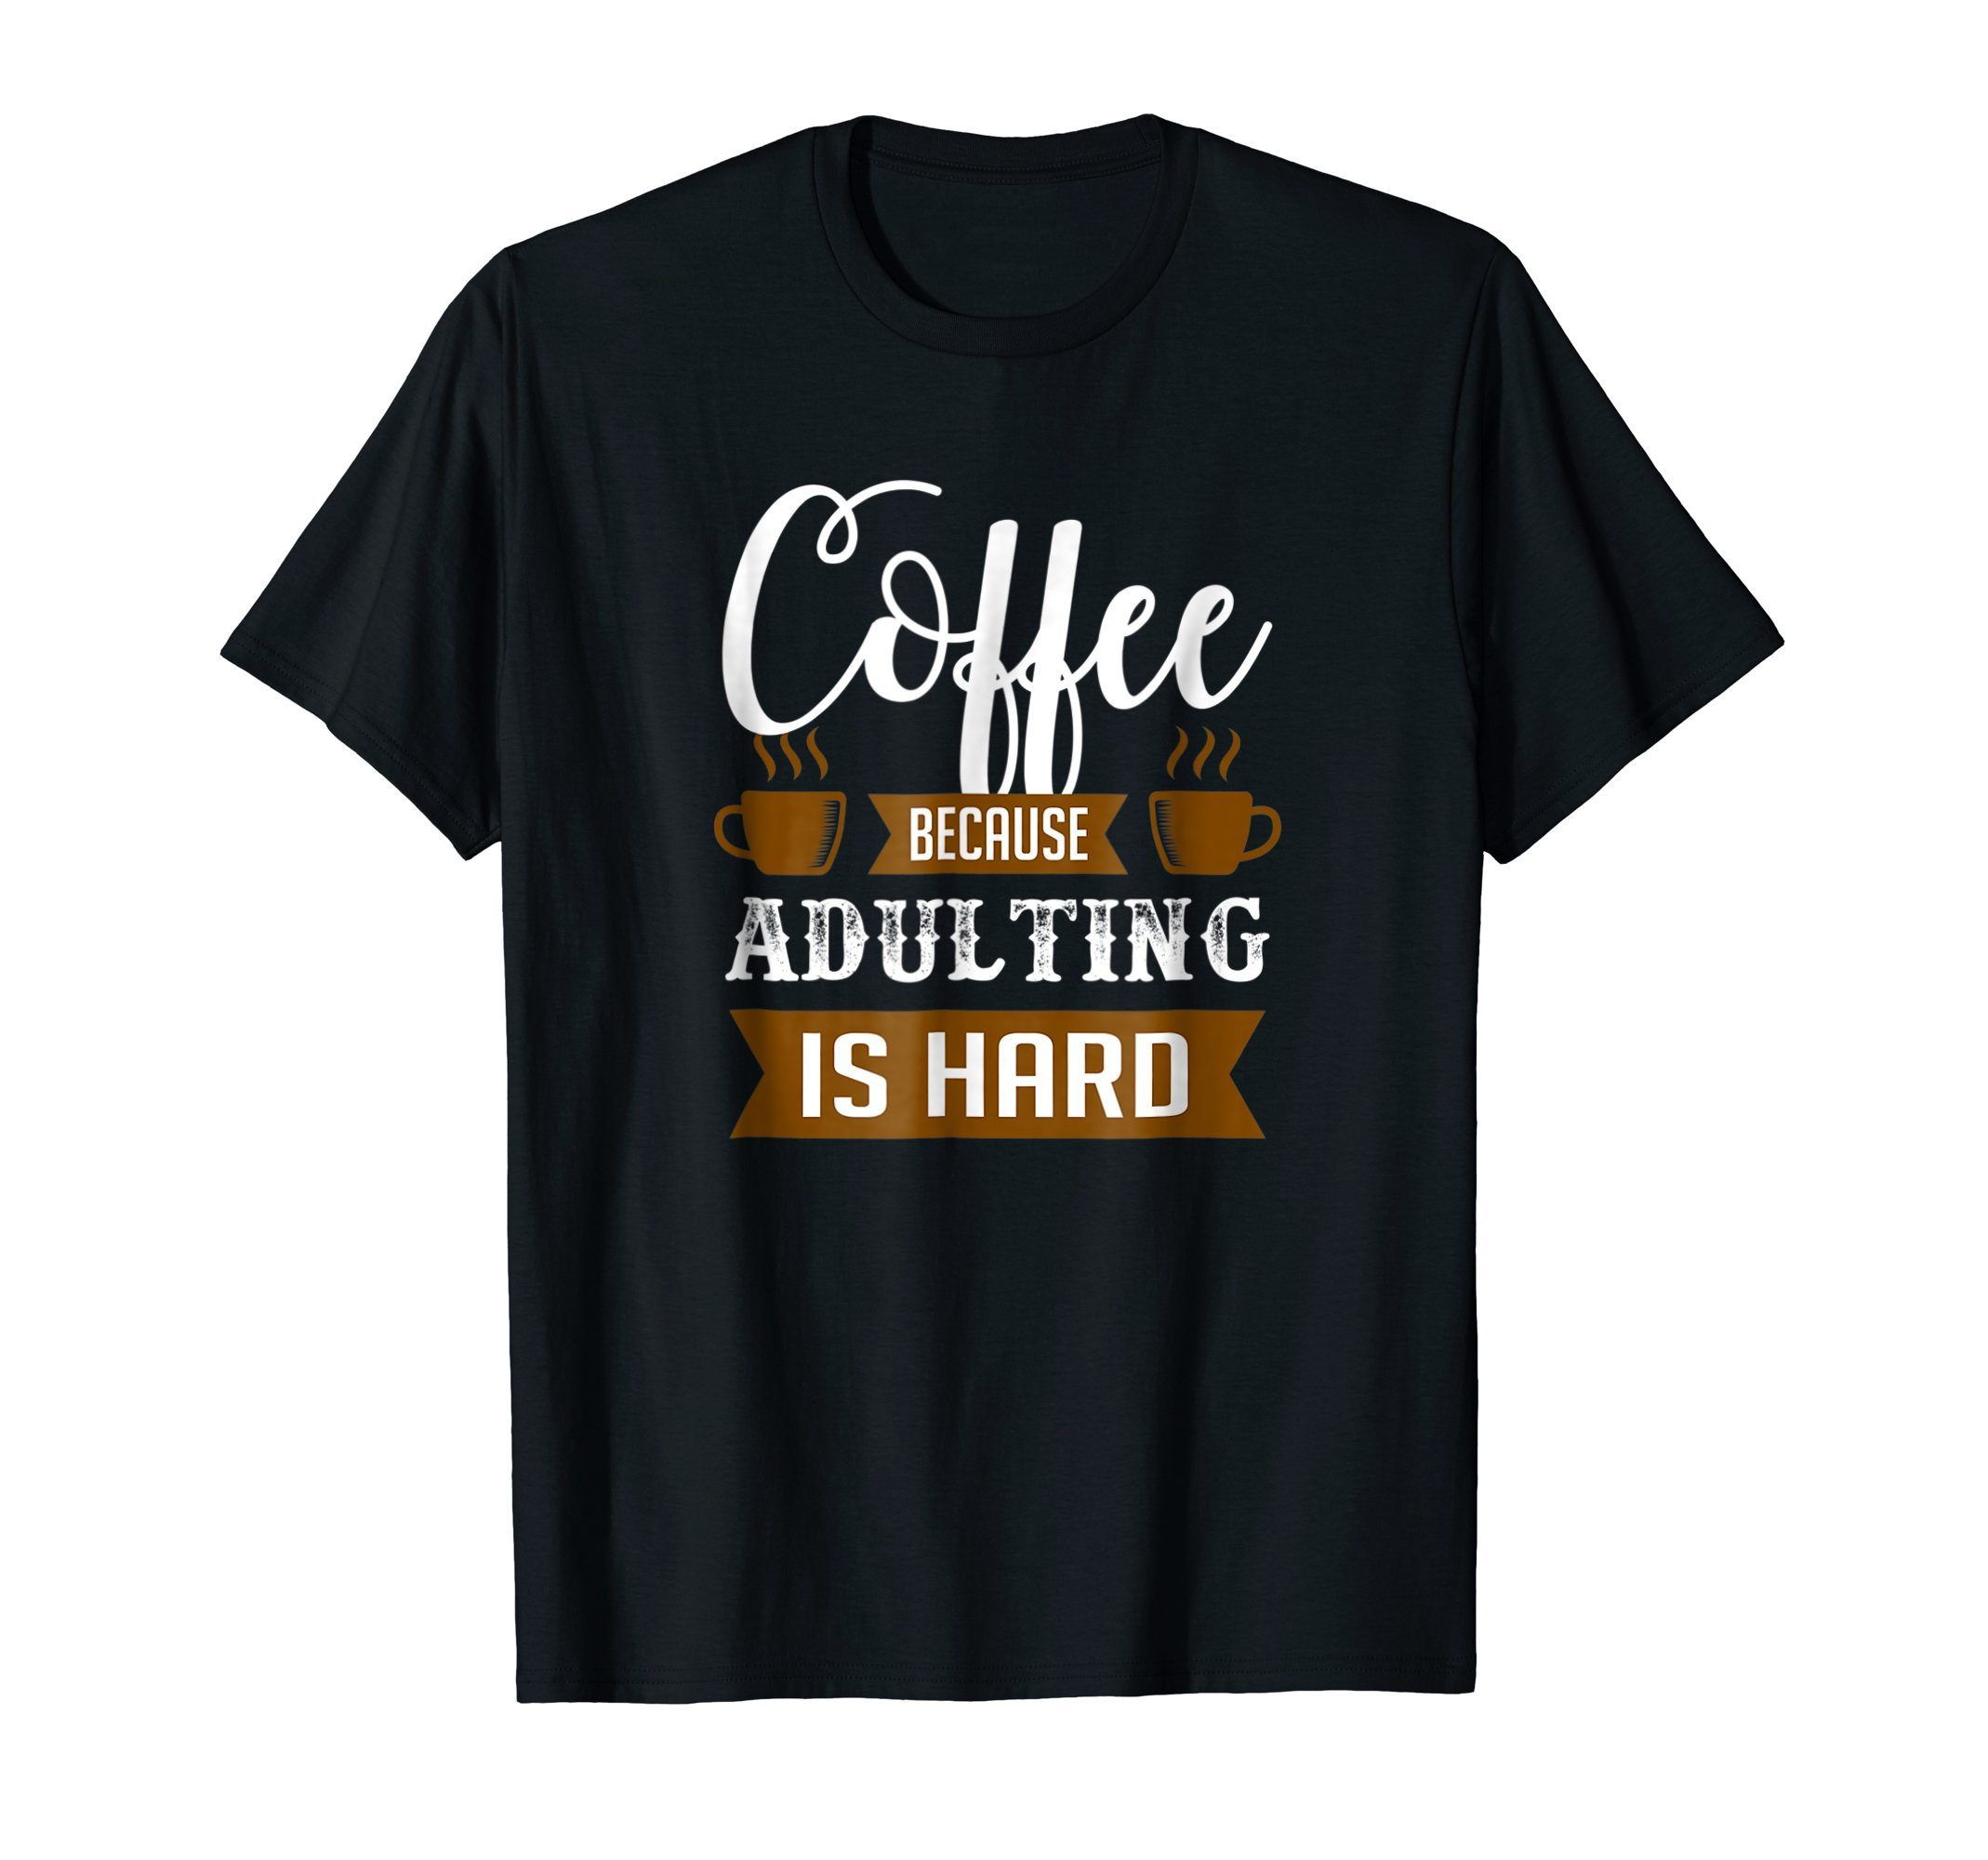 Coffee-because-adulting-is-hard-Funny-Humor-T-Shirt-Tee-Gift